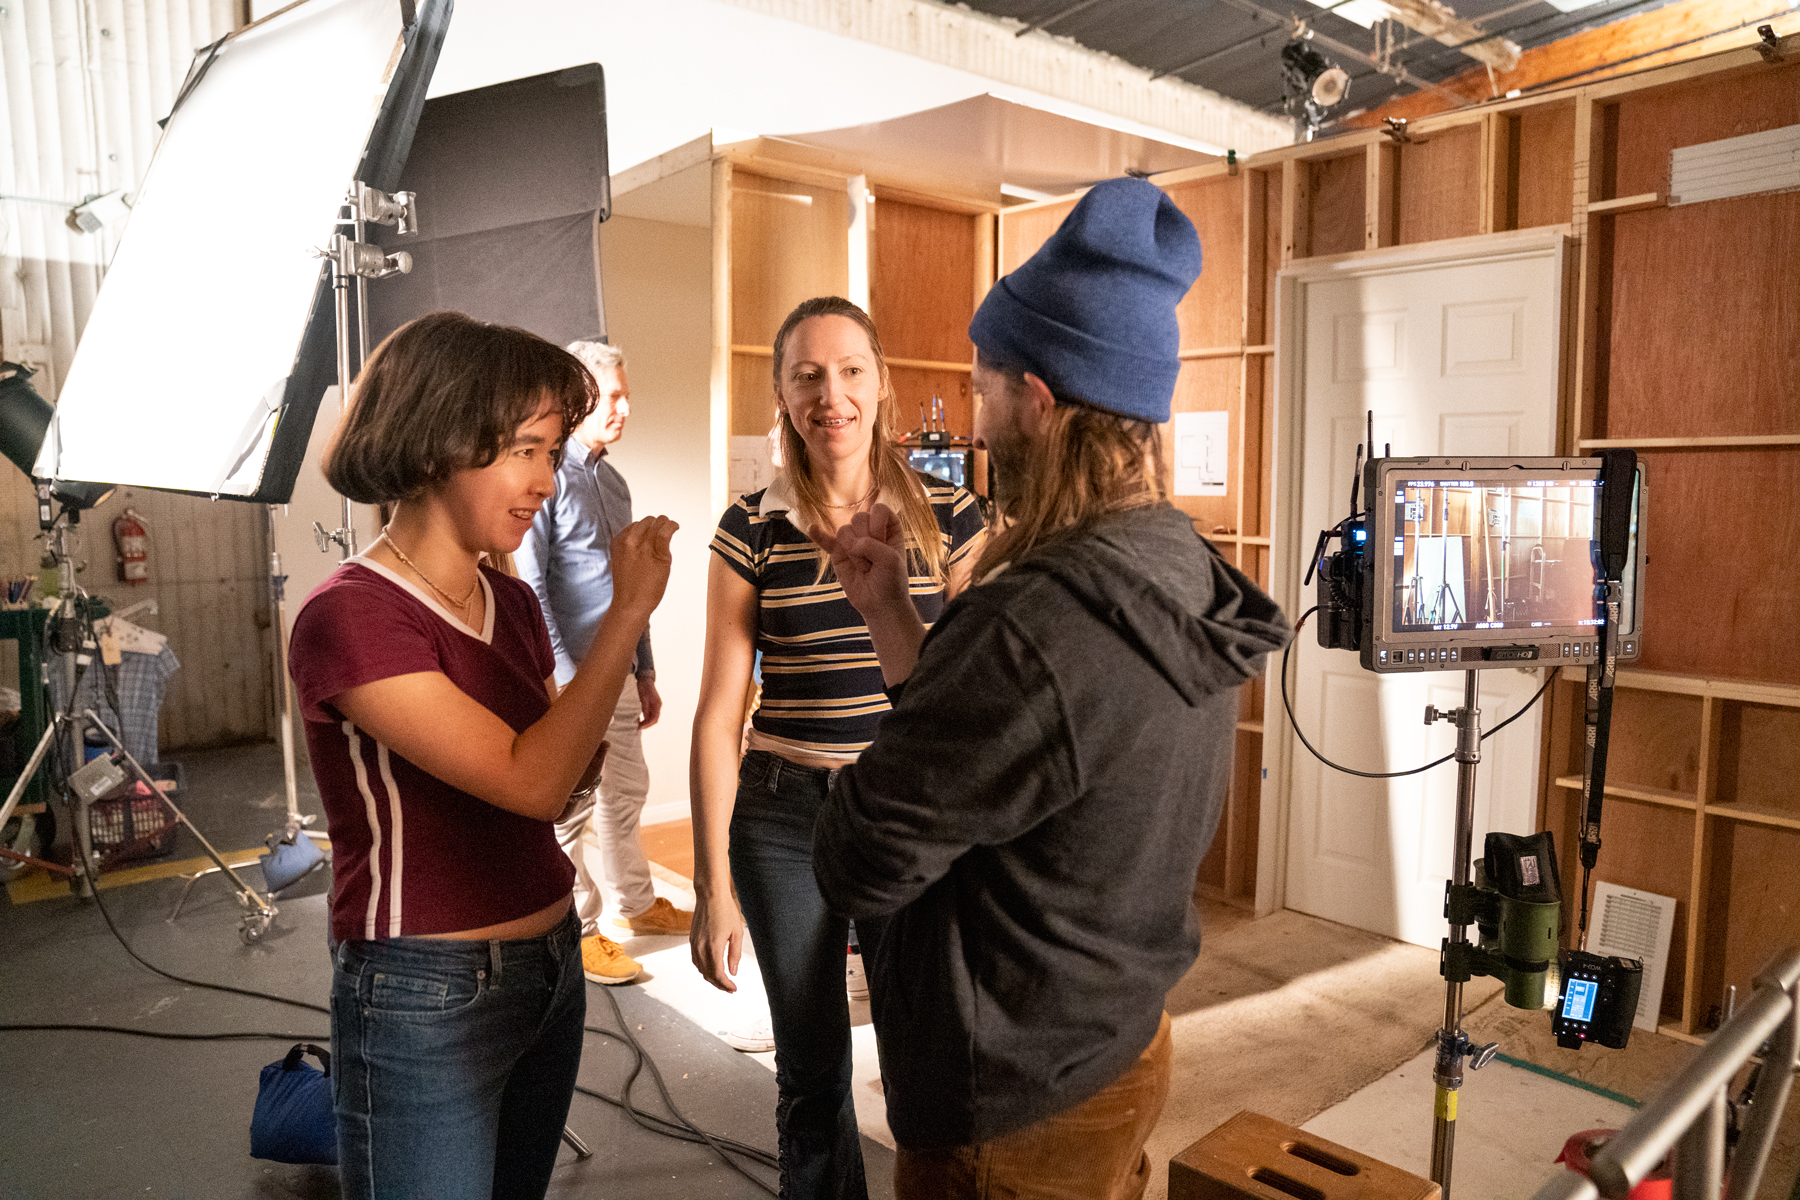 "PEN15 -- ""Maura"" - Episode 204 -- Witnessing their daughters reach a new low, Kathy and Yuki rally around them. At school, Maya and Anna receive an opportunity at redemption but it will come with a range of influences. Maya (Maya Erskine), Anna (Anna Konkle), Director Sam Zvibleman, shown. (Photo by: Lara Solanki/Hulu)"